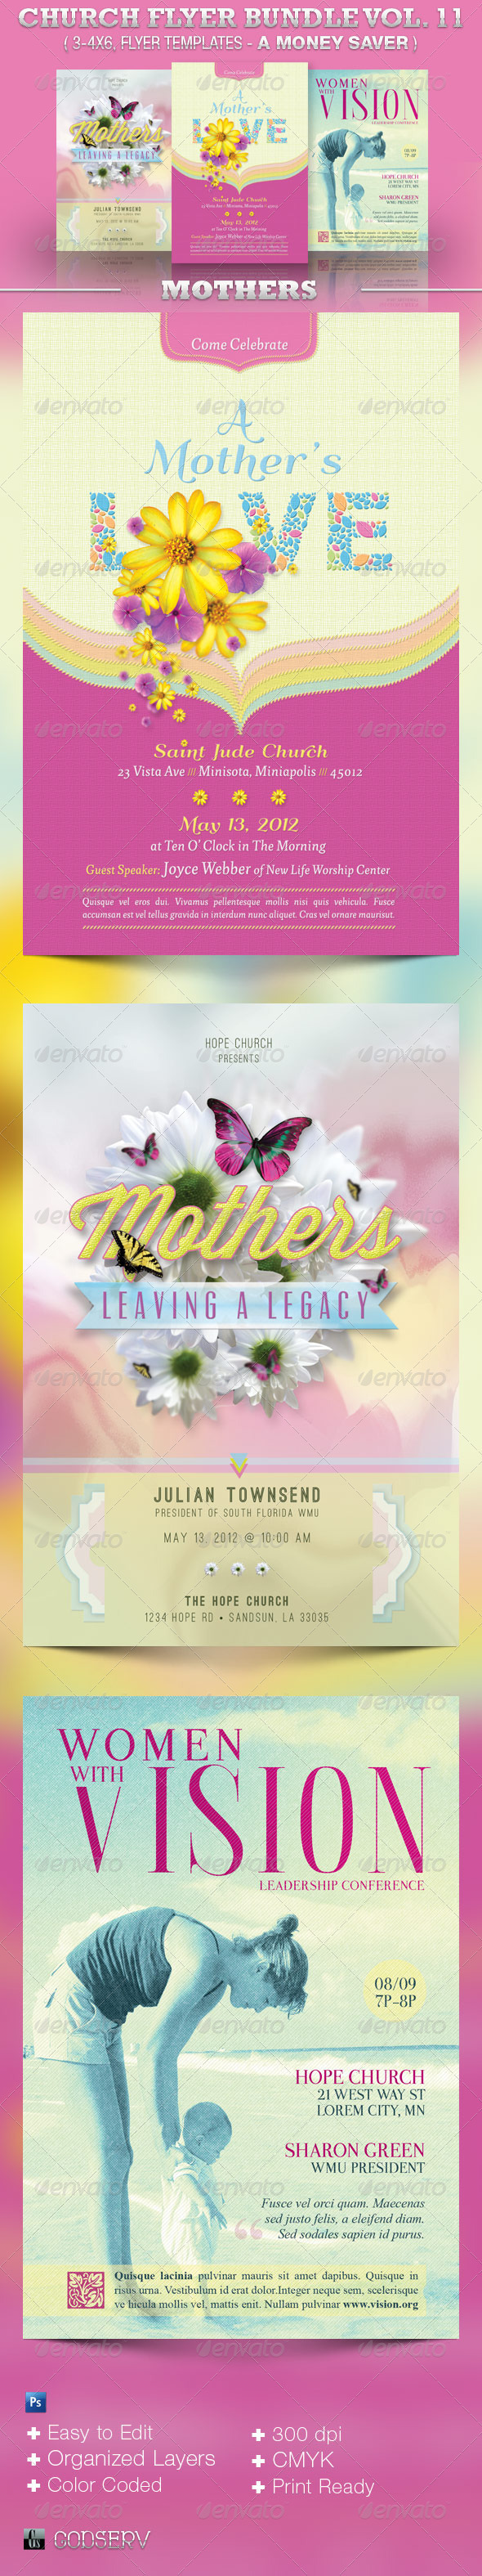 Church Flyer Template Bundle Volume 11 - Mothers - Church Flyers